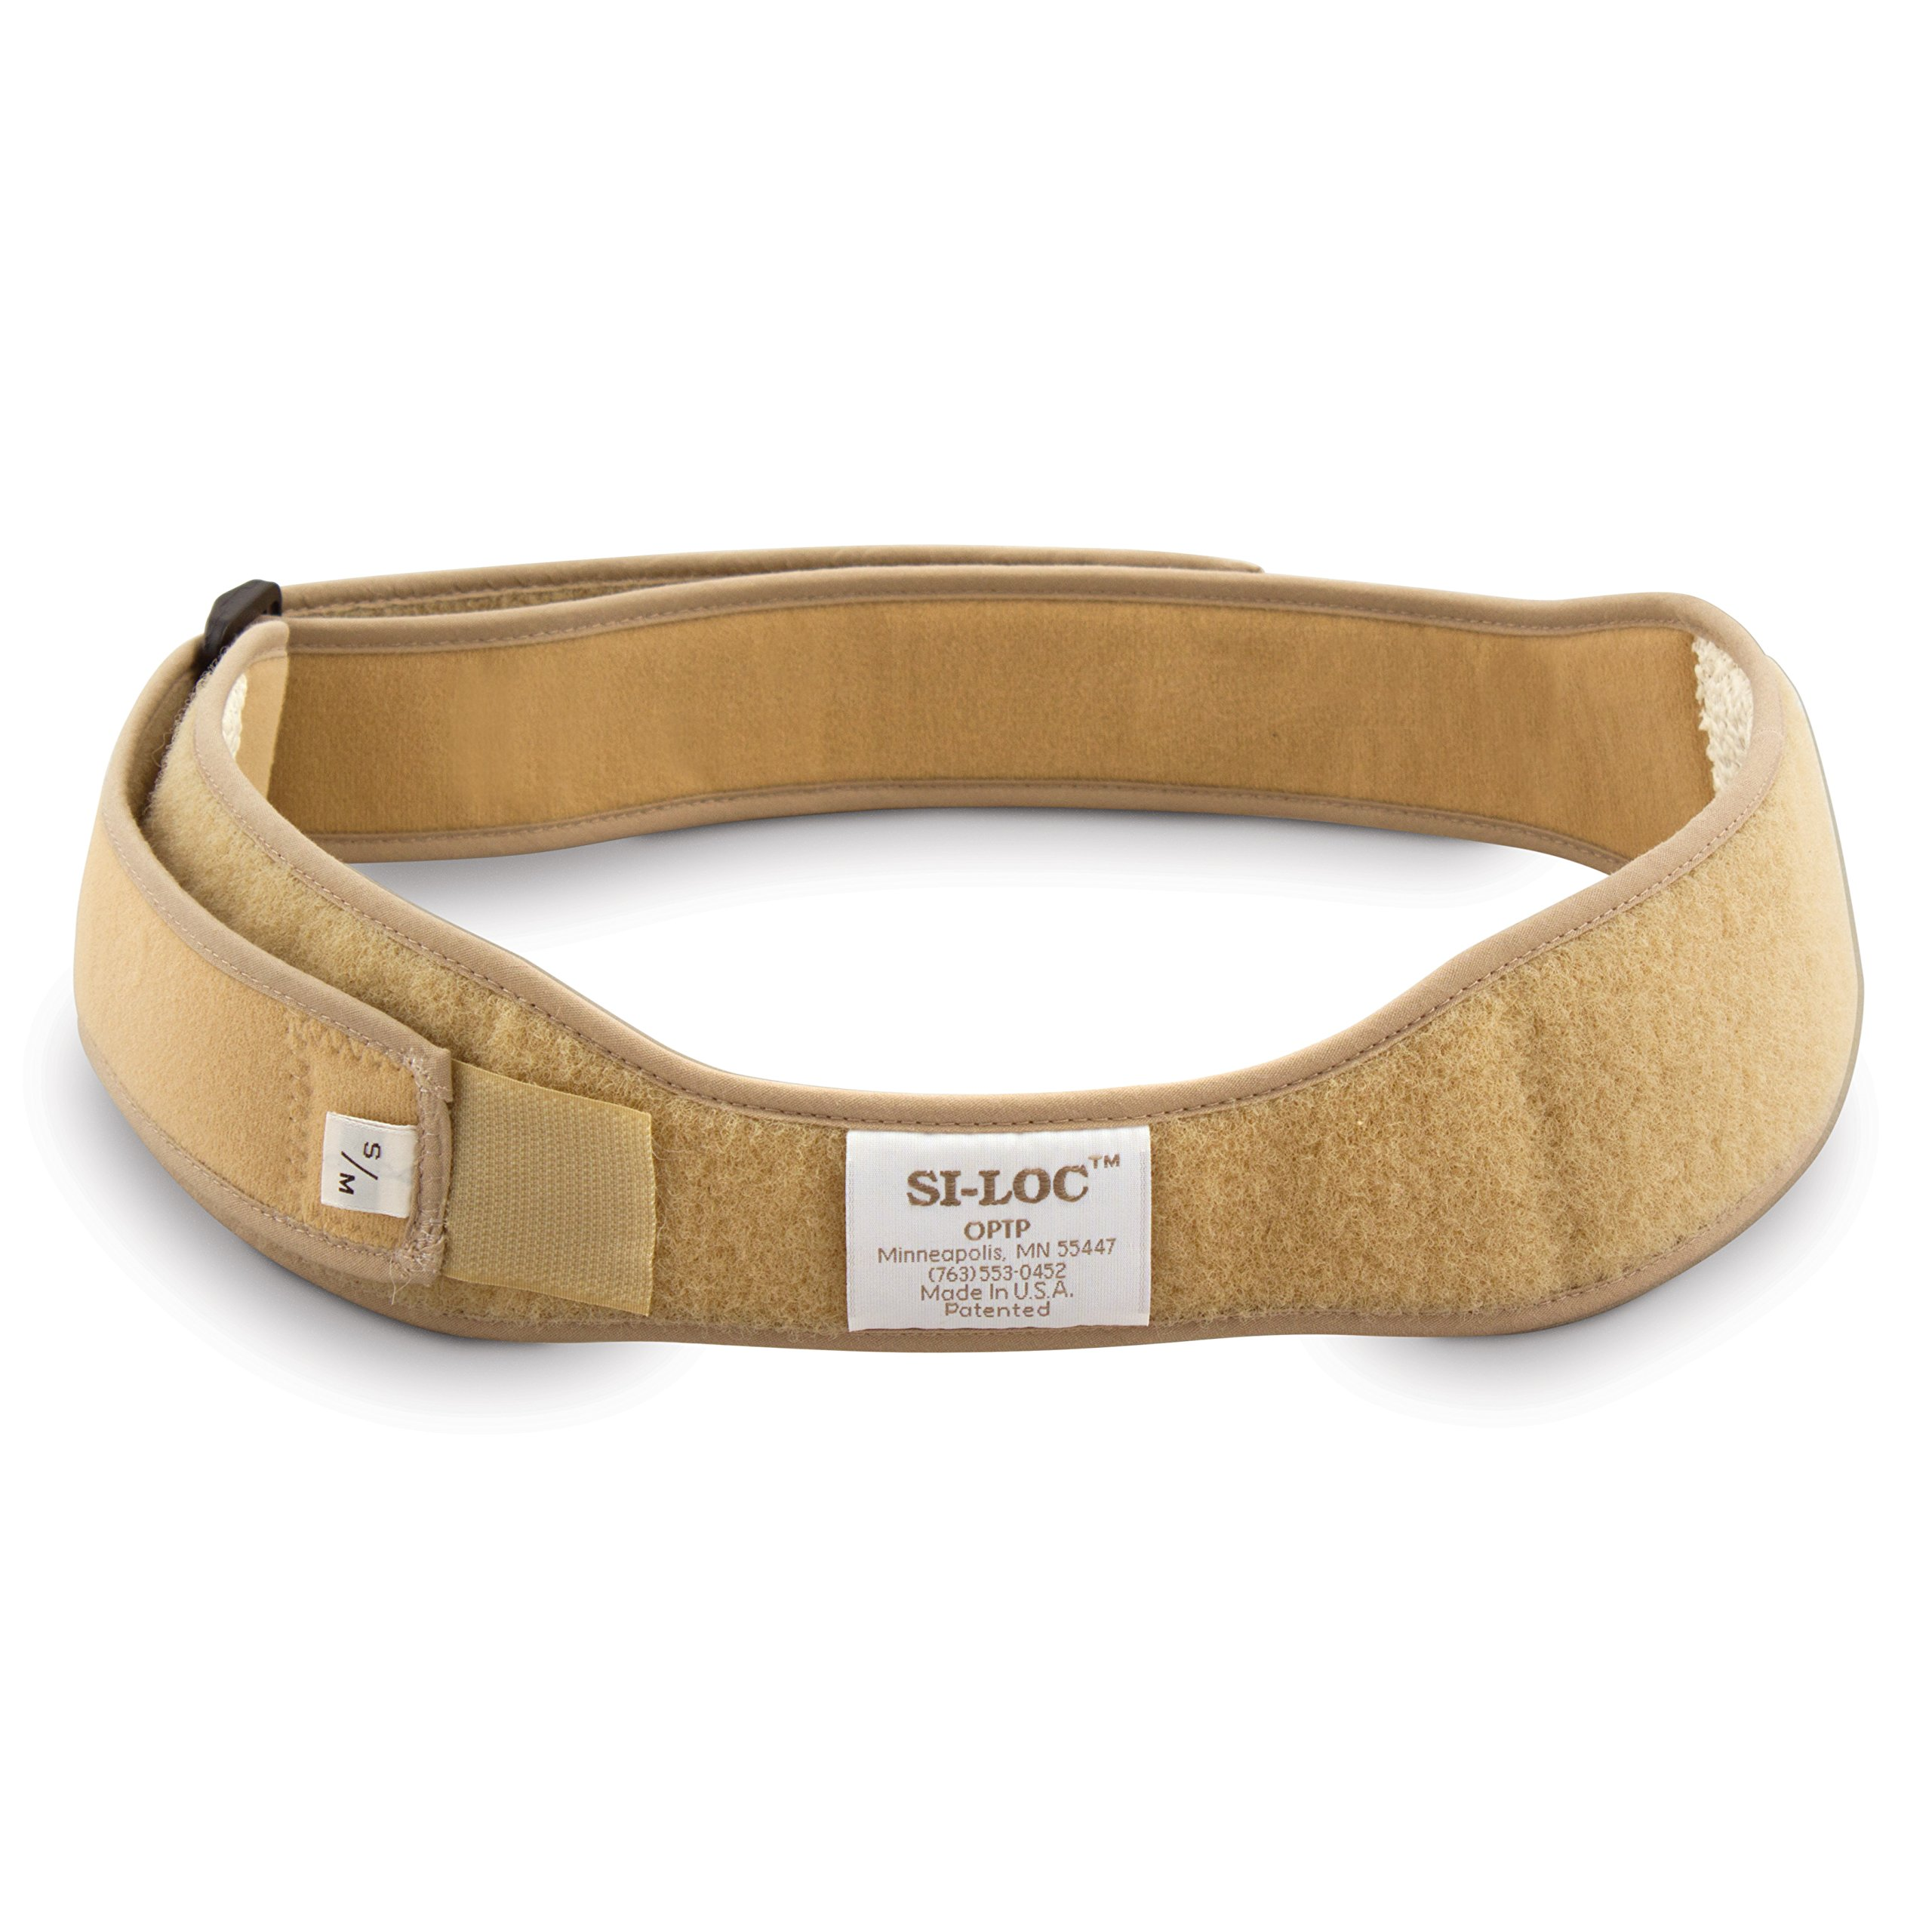 OPTP SI-LOC Sacroiliac Support Belt - Small/Medium (670) - Low Back and Pelvic Pain Relief